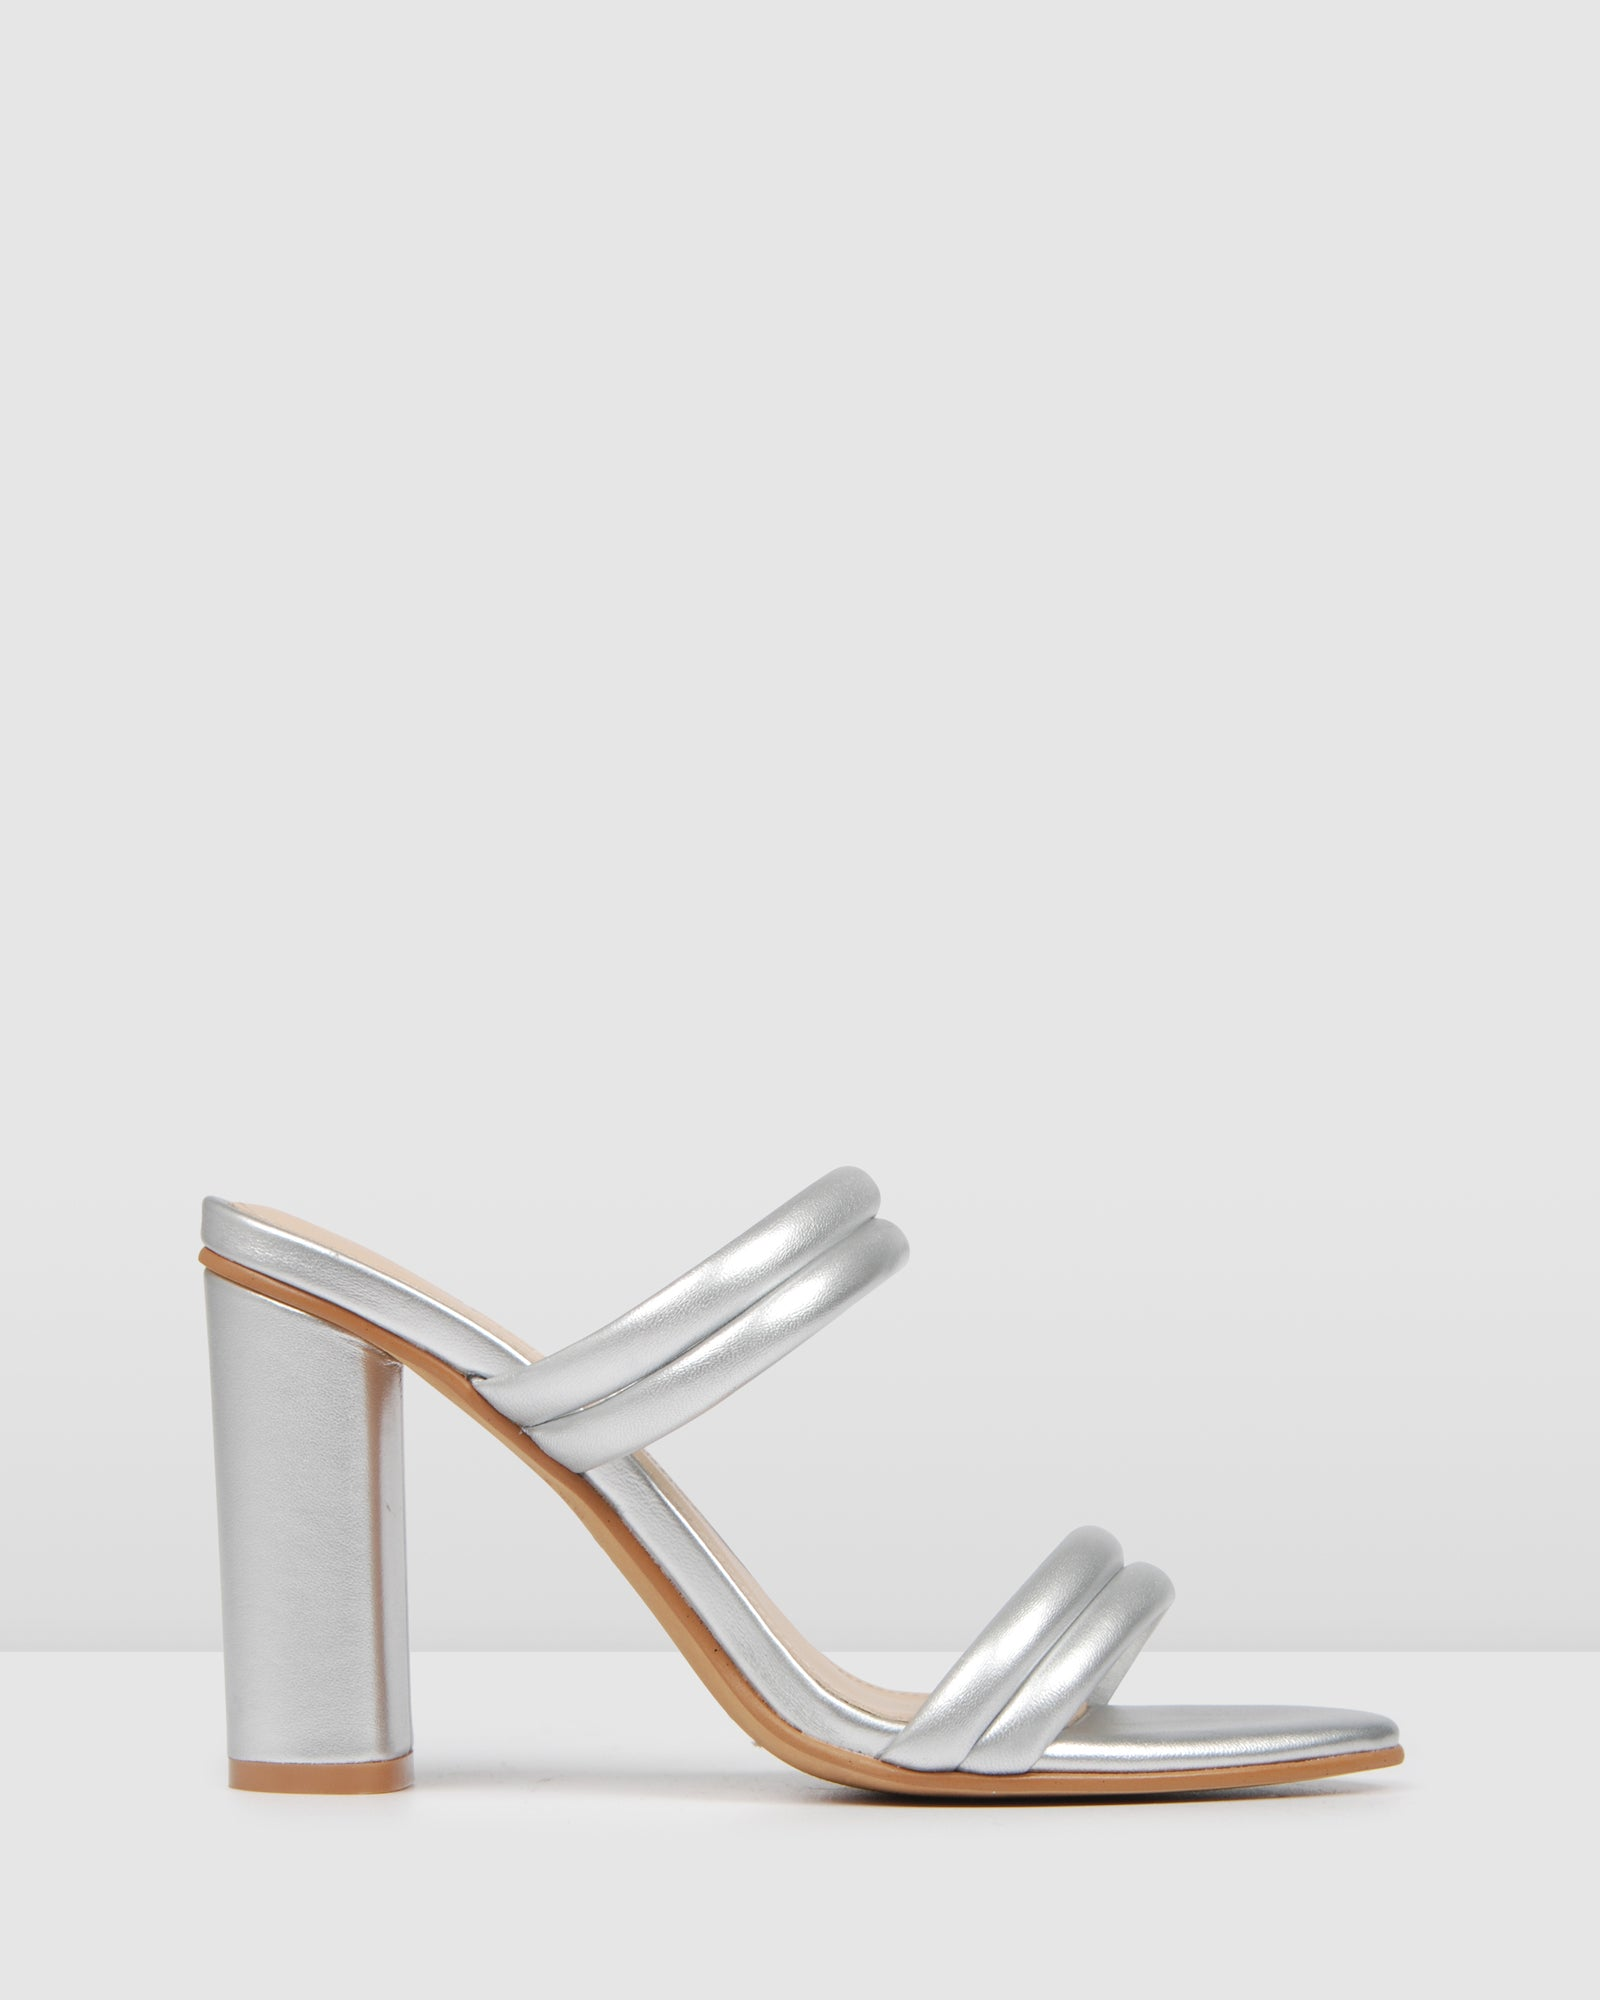 POMONA HIGH HEEL SANDALS SILVER LEATHER